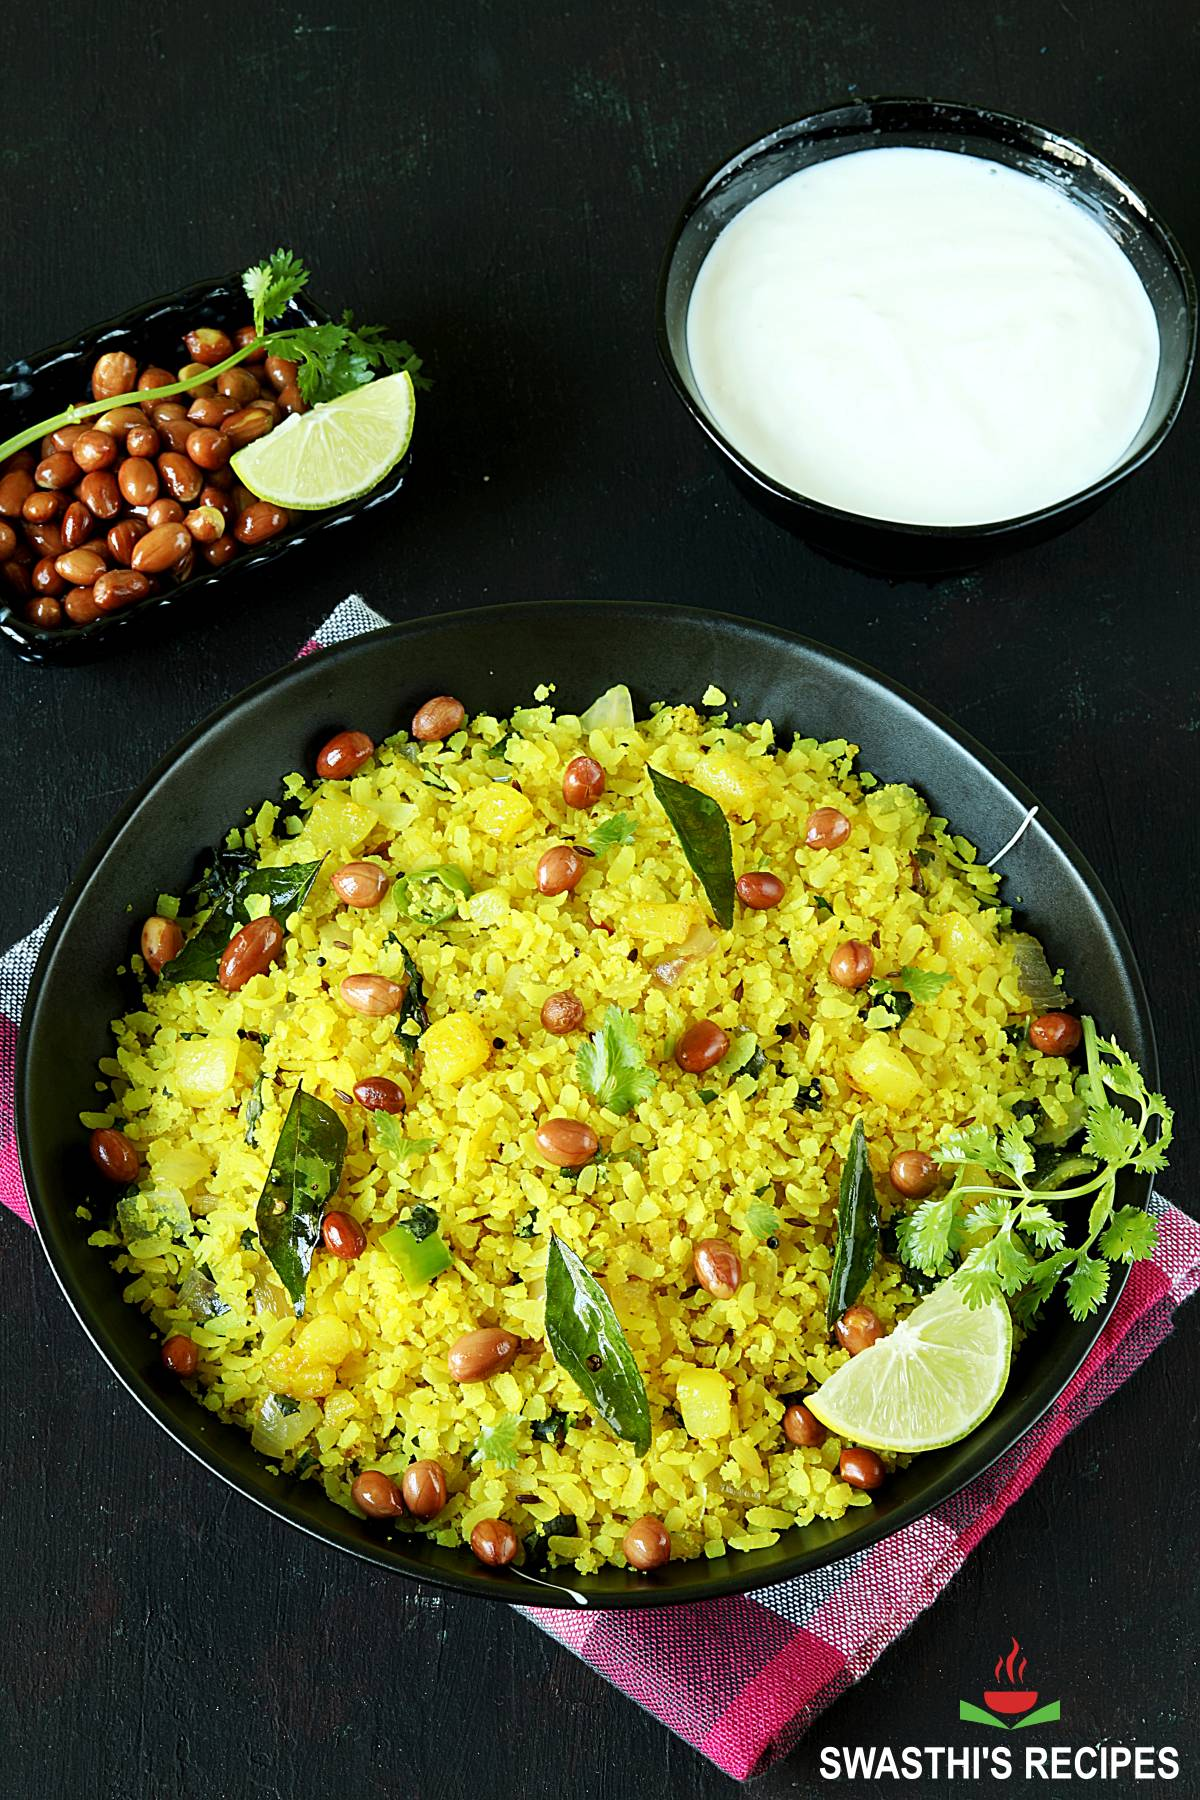 poha recipe made with flattened rice, spices and herbs